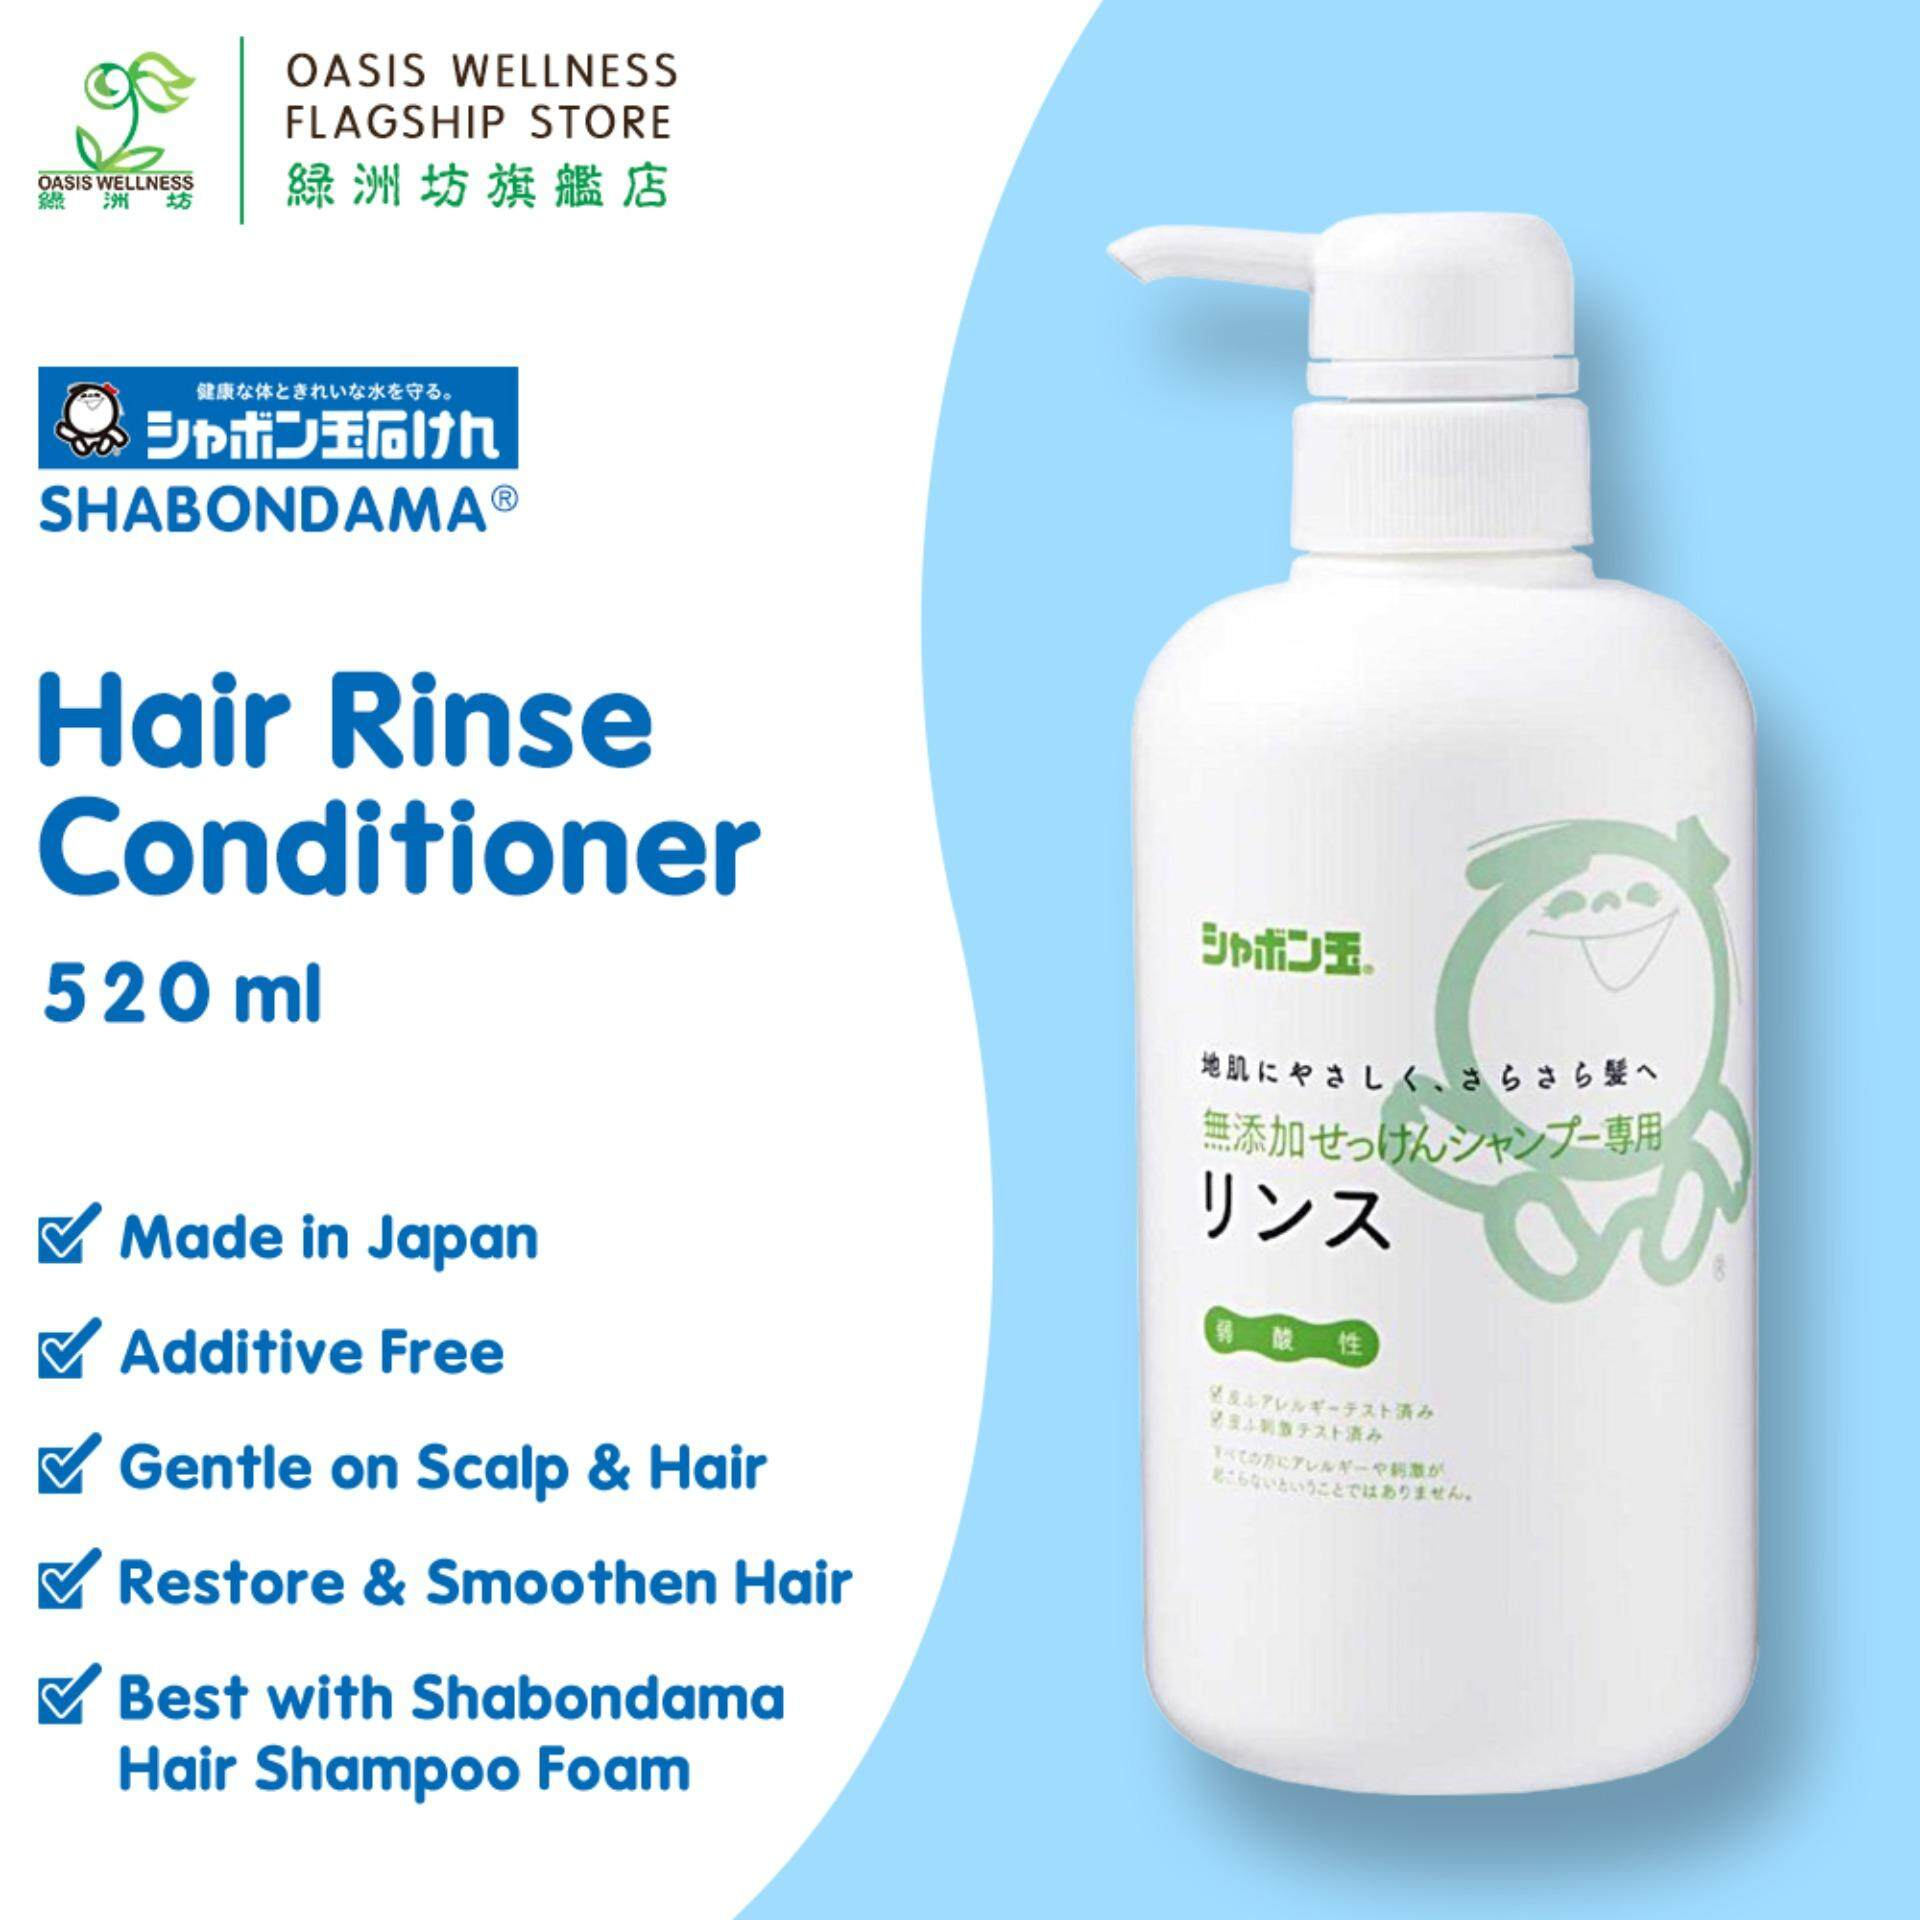 Shabondama Mutenka Rinse Hair Conditioner (520ml) - Natural Hair Conditioner -  シャボン玉石けん 护髮精华露护发素 (520毫升)